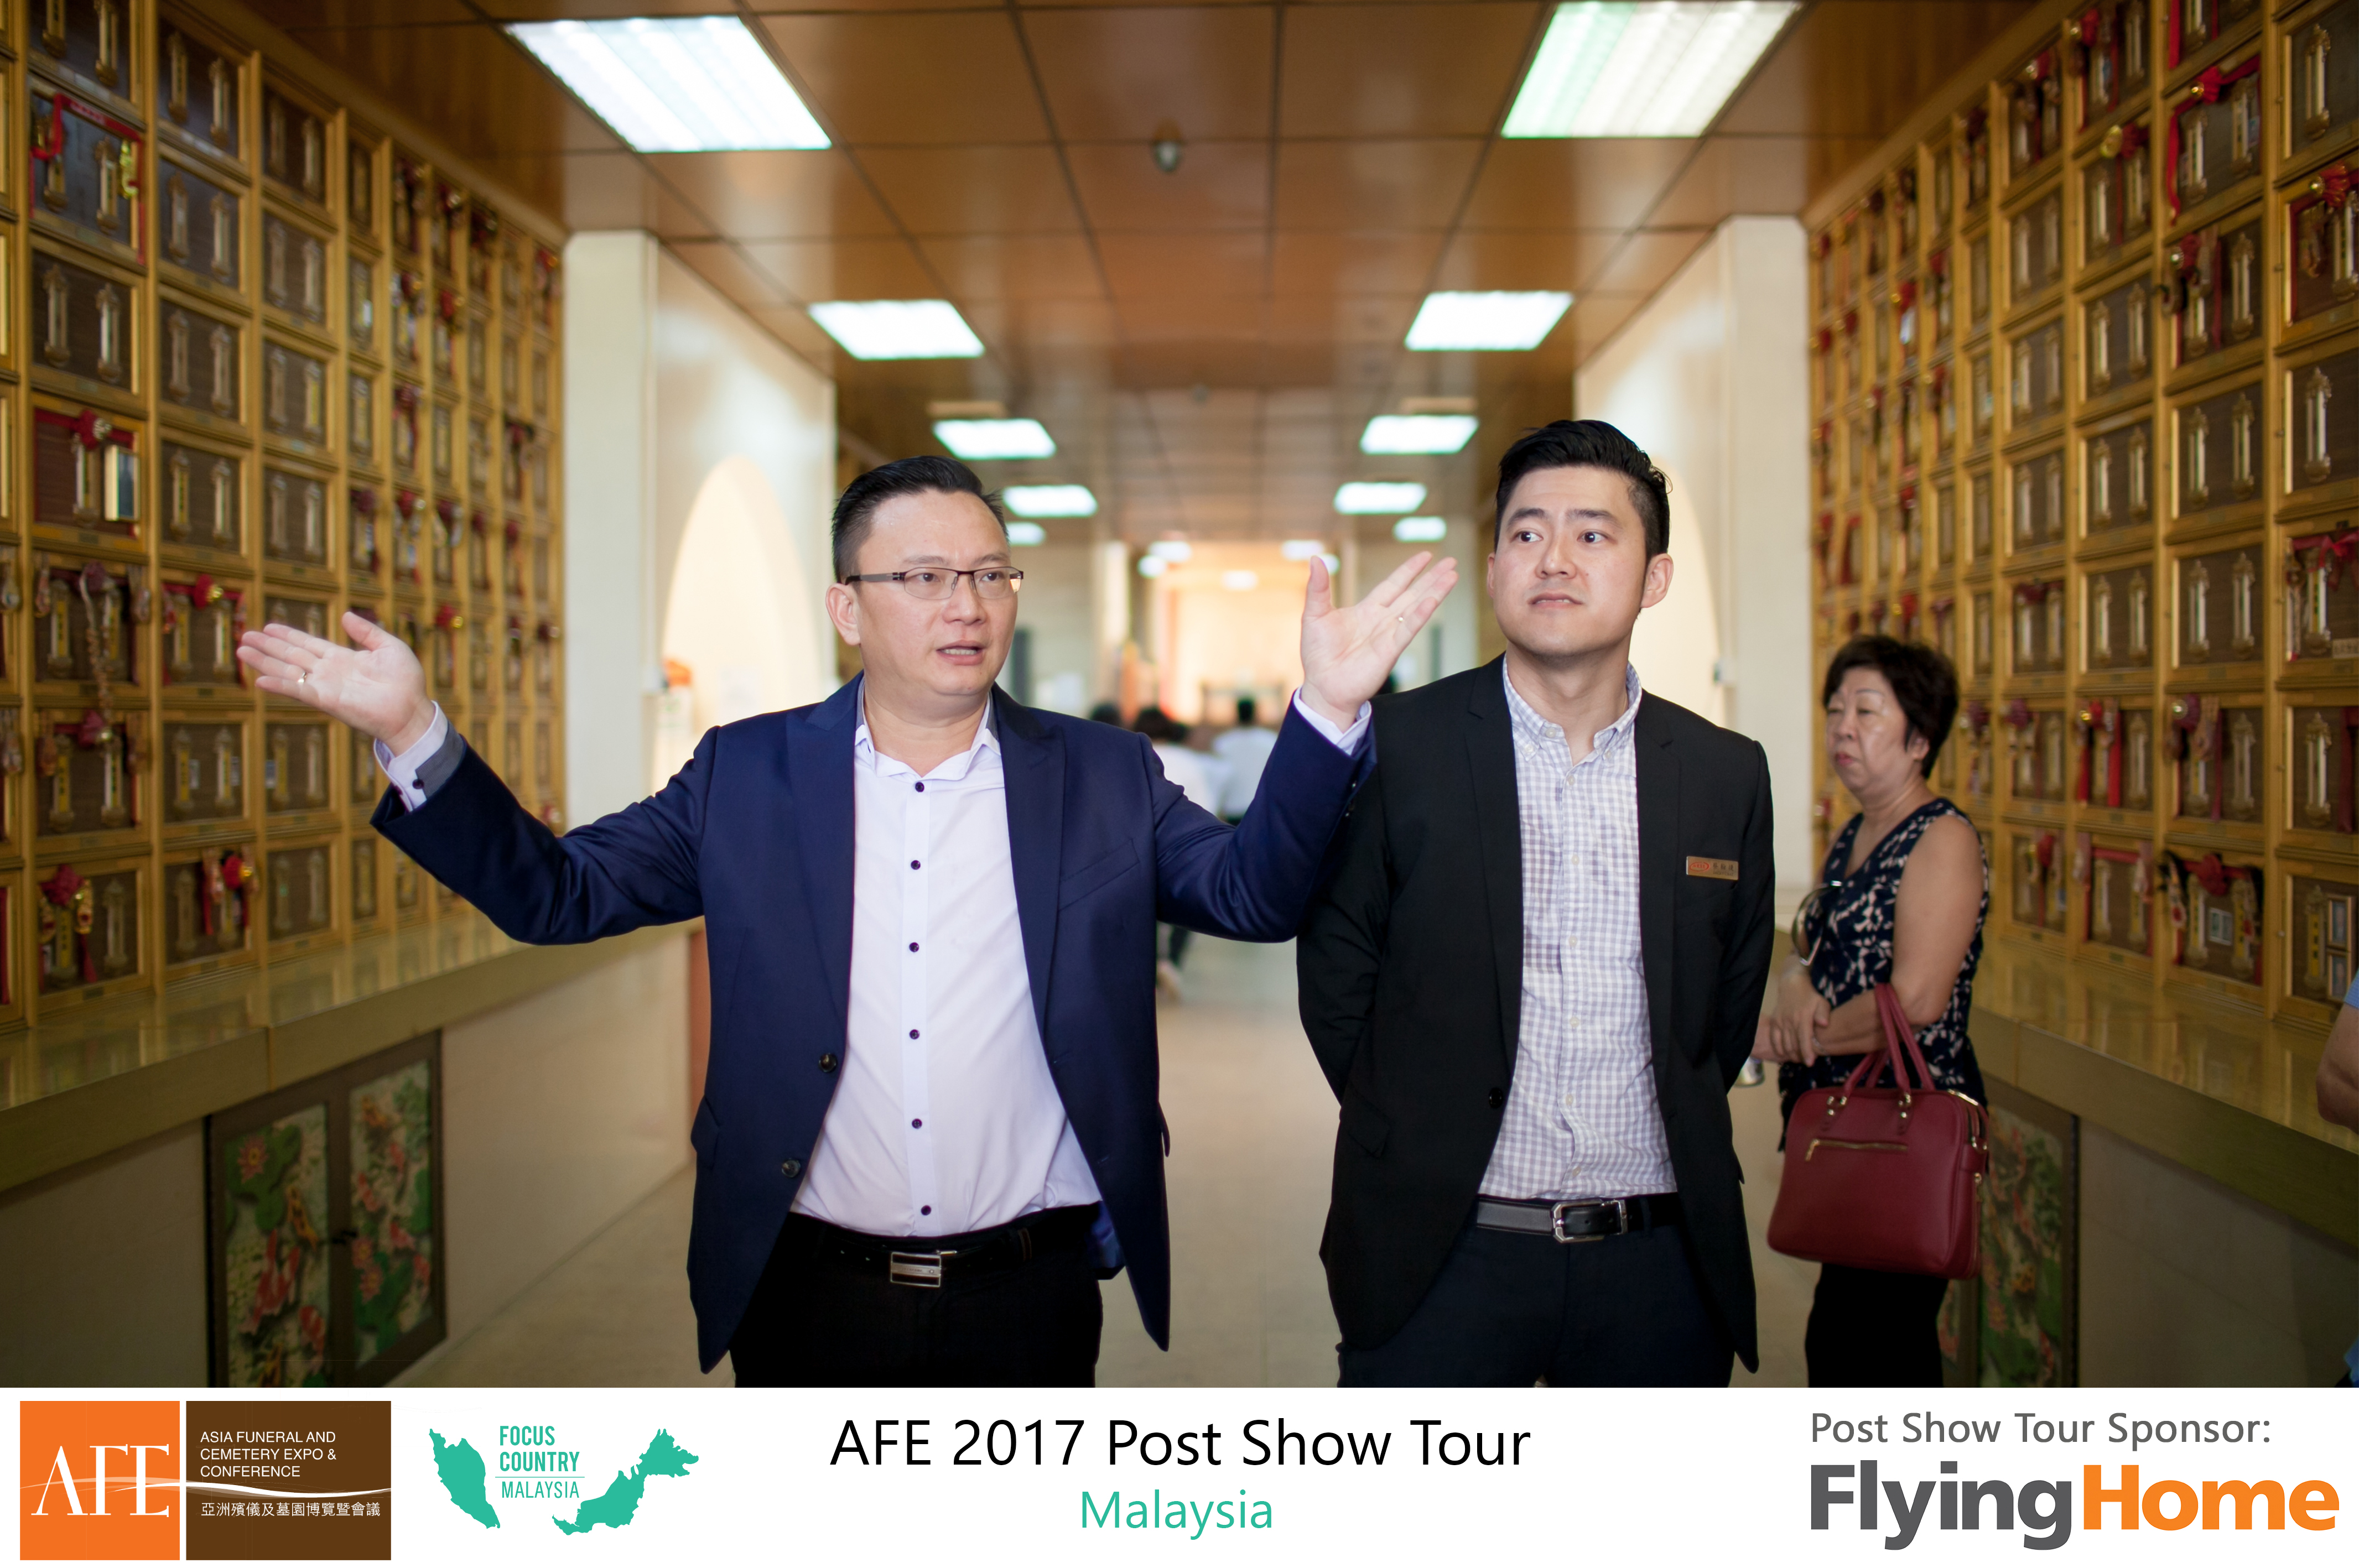 AFE Post Show Tour 2017 Day 4 - 40